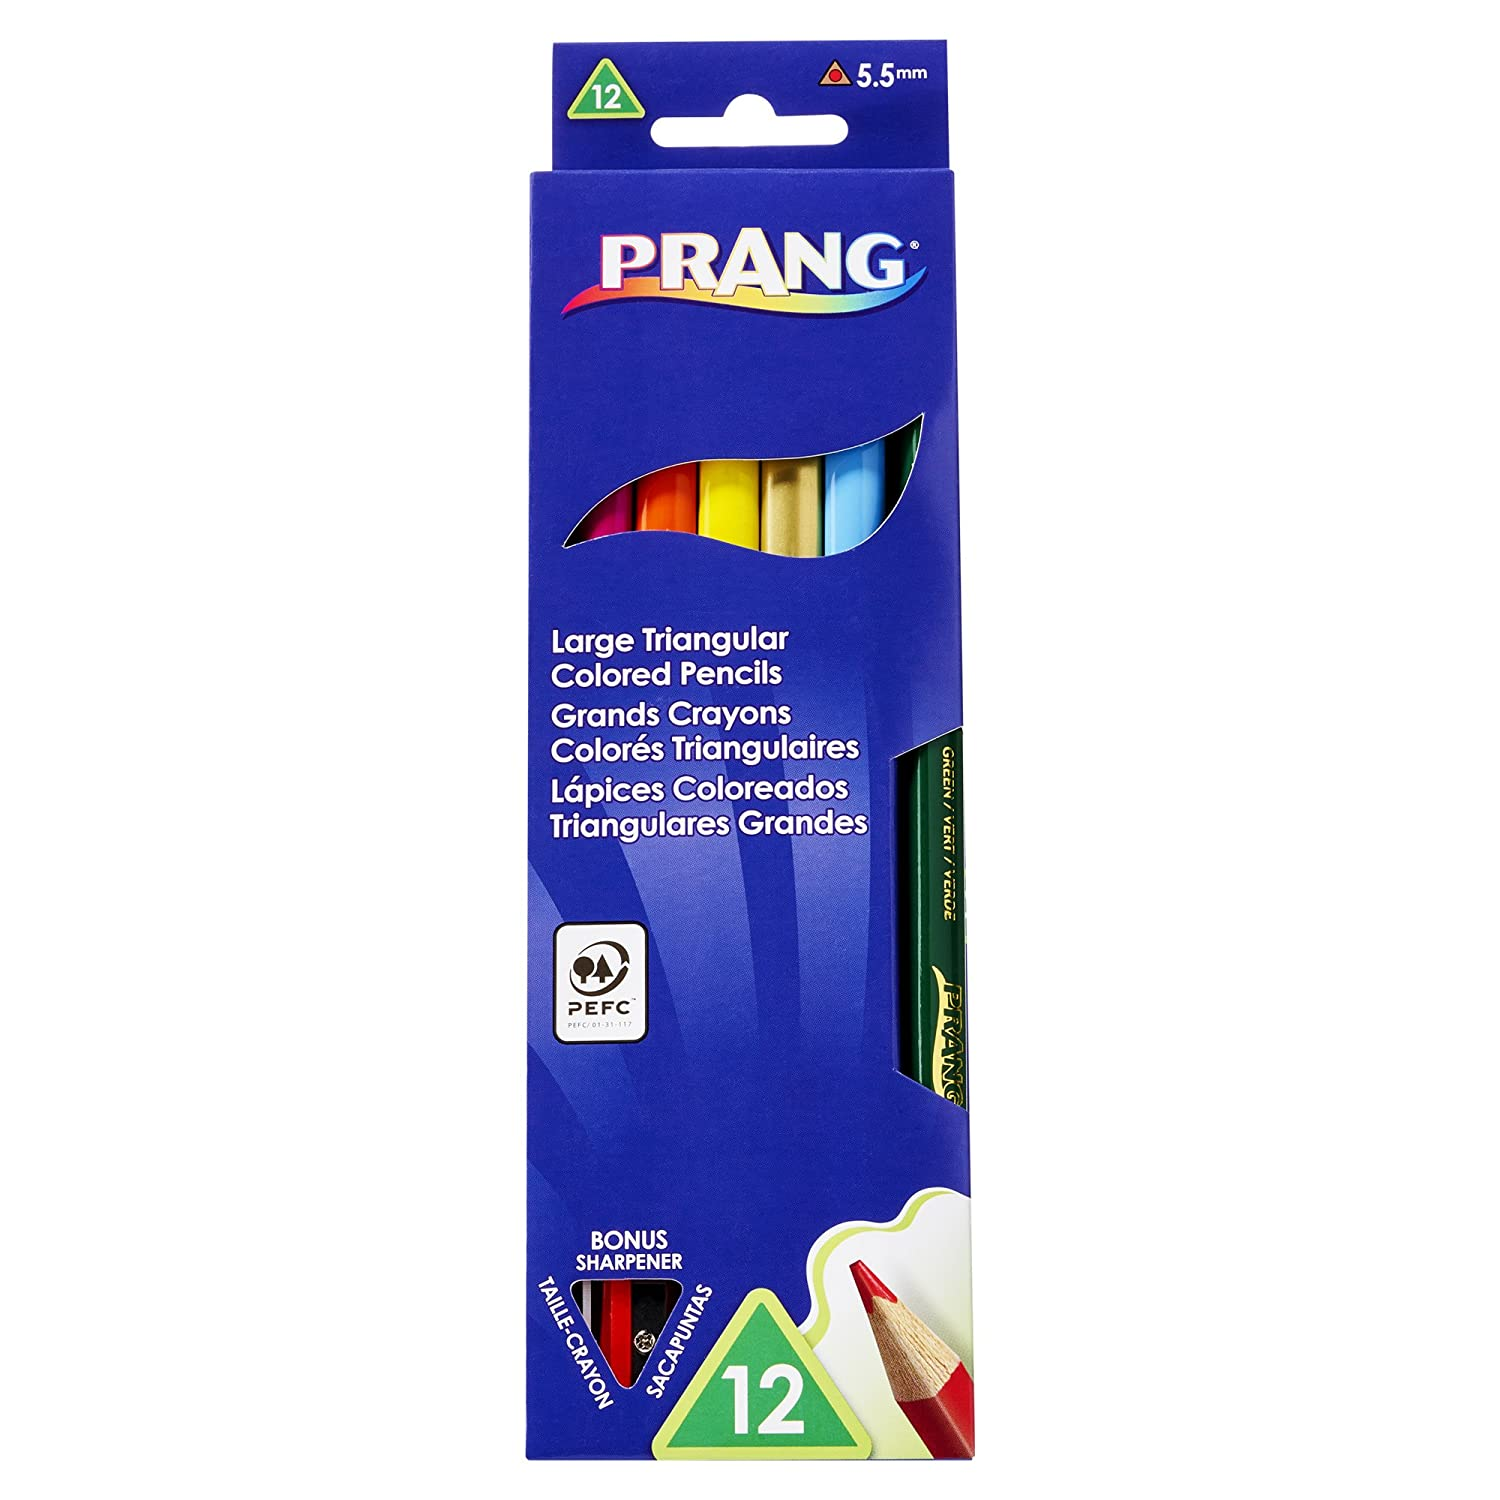 Prang Large Triangular Colored Pencil Set, 5.5 Millimeter Cores, with Sharpener, Set of 12, Assorted Colors (25120) Cell Distributors Dixon Ticonderoga Inc.